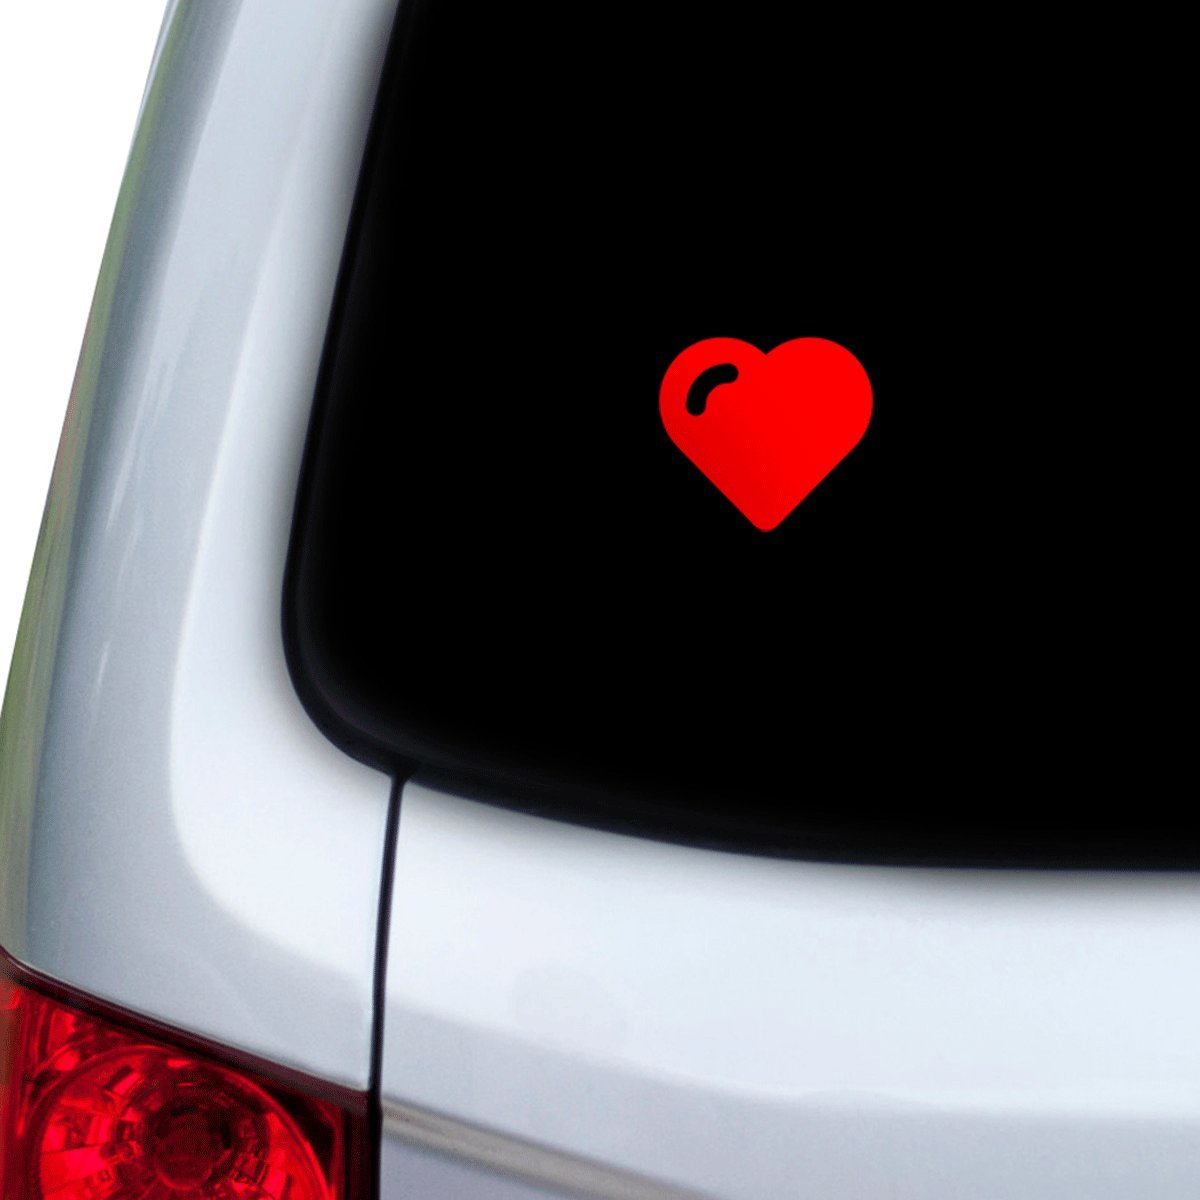 Red Hoods StickAny Car and Auto Decal Series CareHeart Sticker for Windows Doors